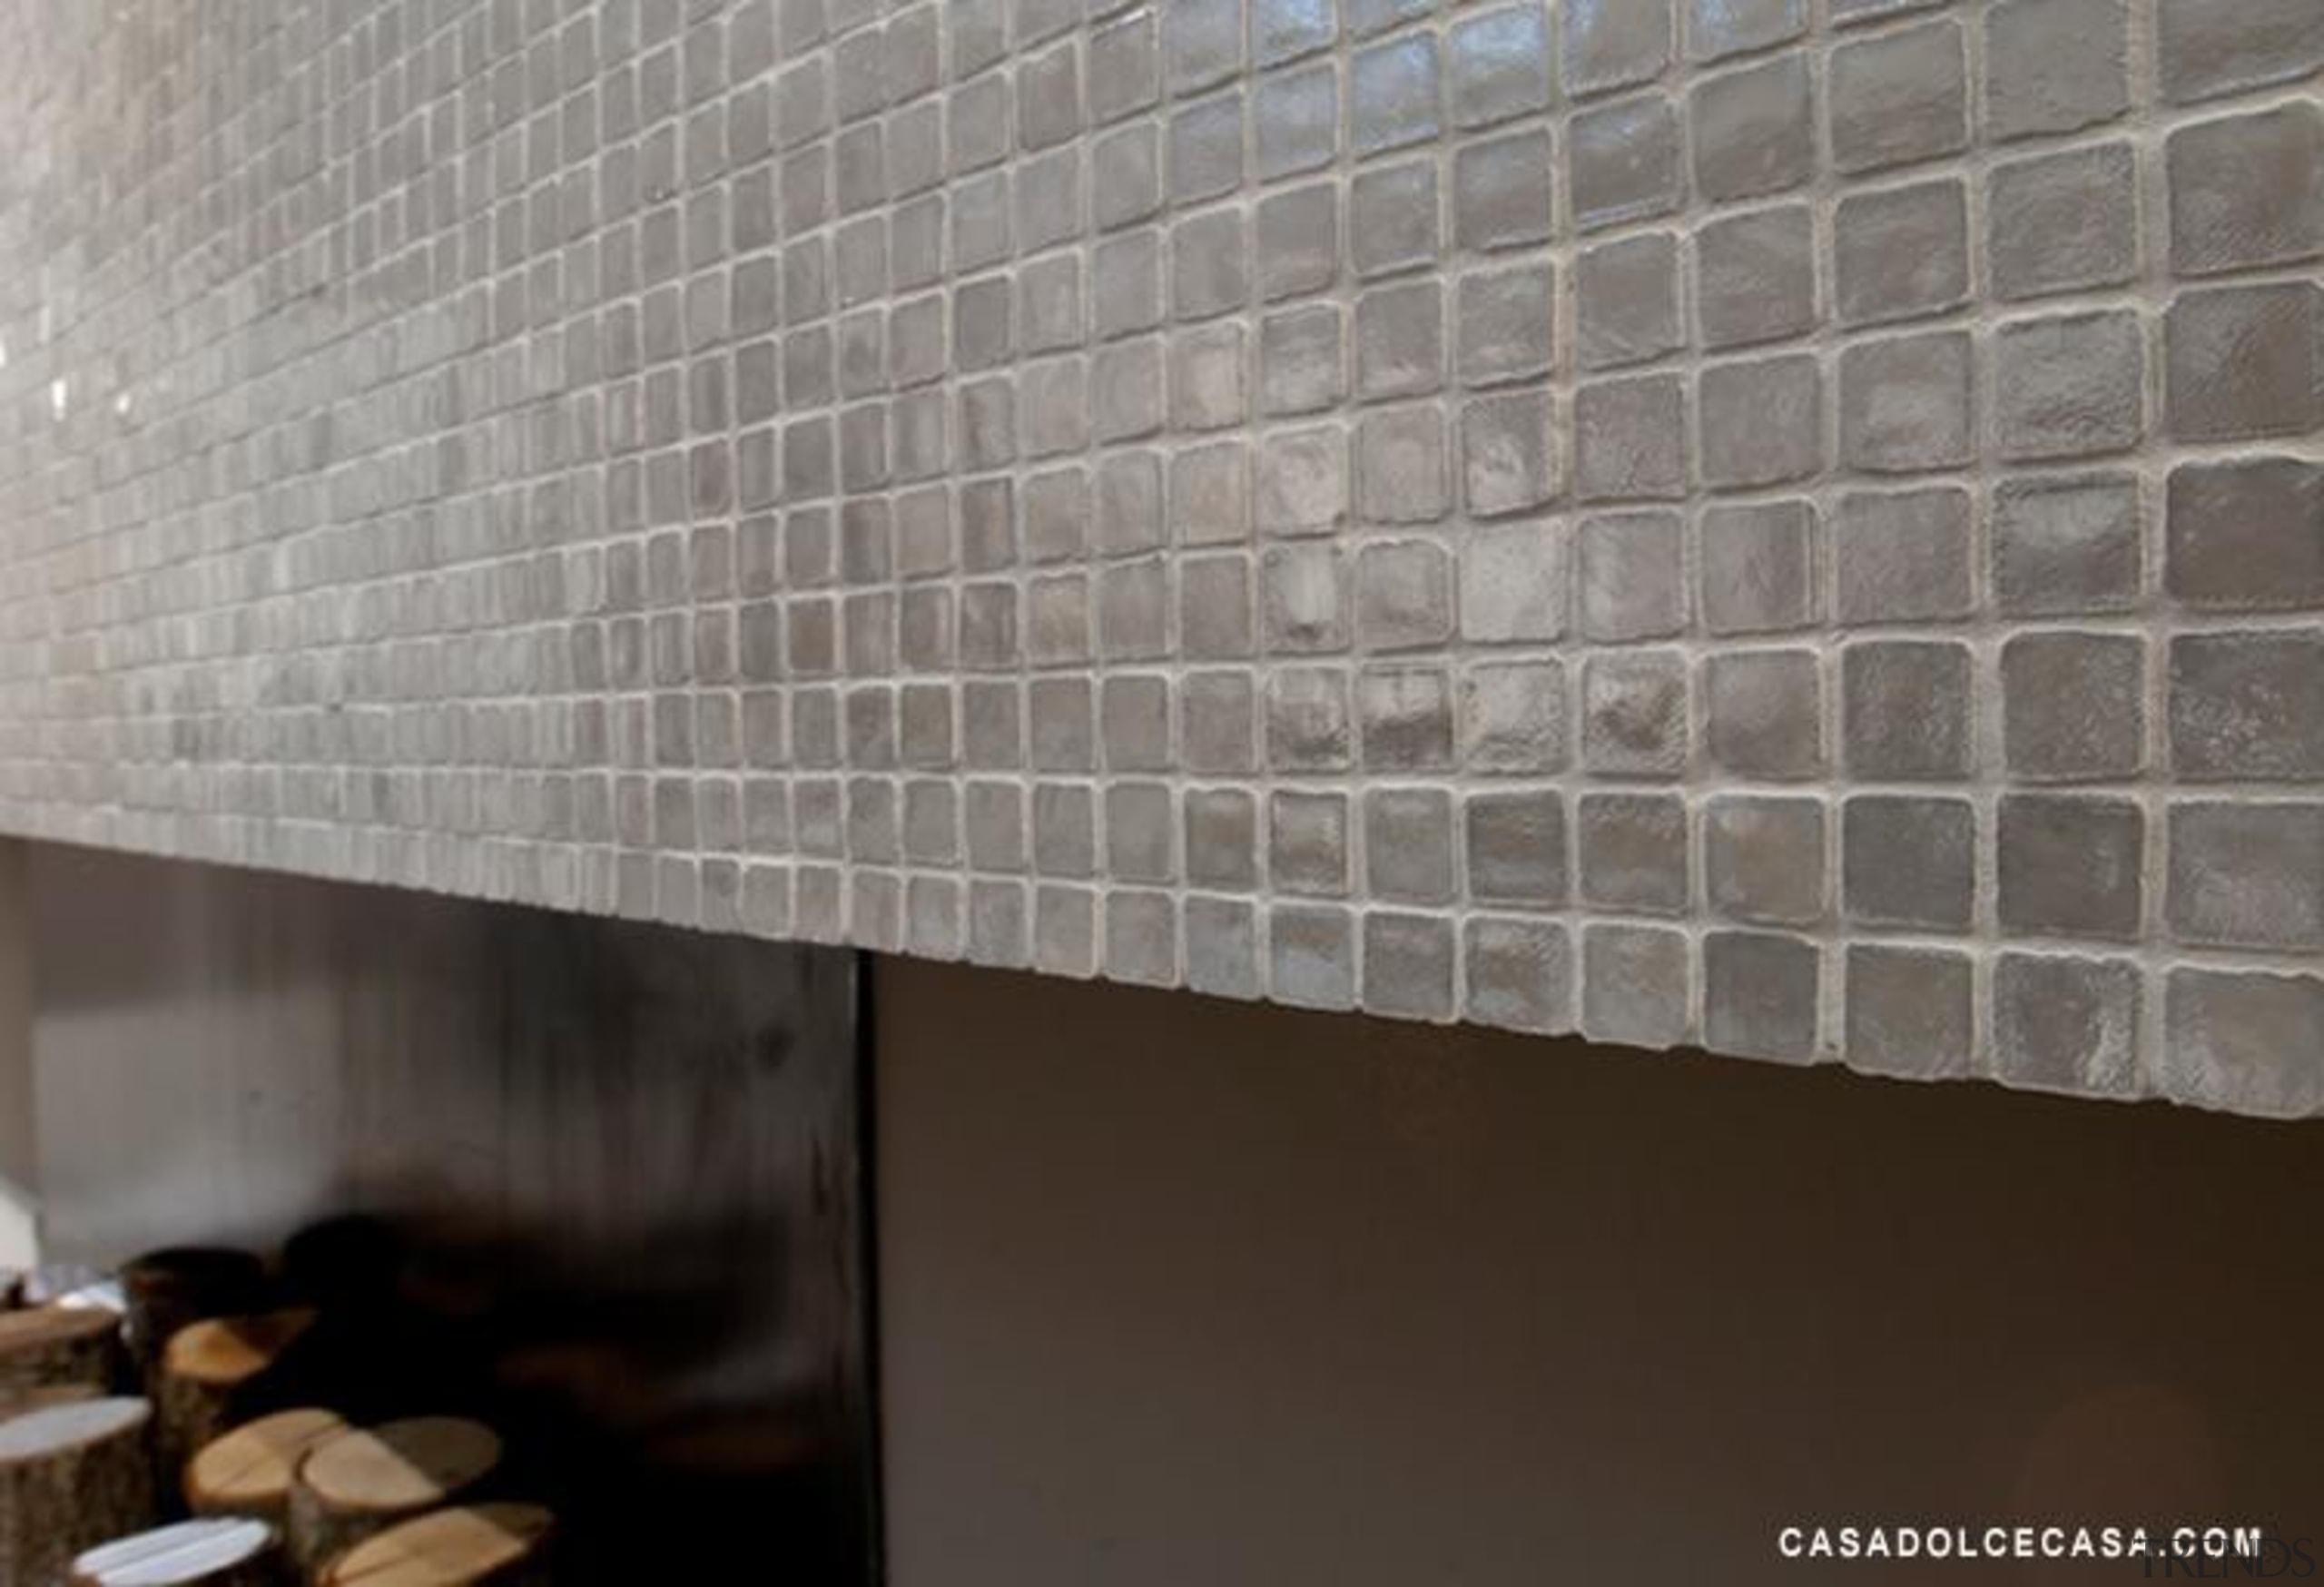 silver lux mosaic tiles - Vetro Mosaics Range daylighting, floor, flooring, tile, wall, gray, black